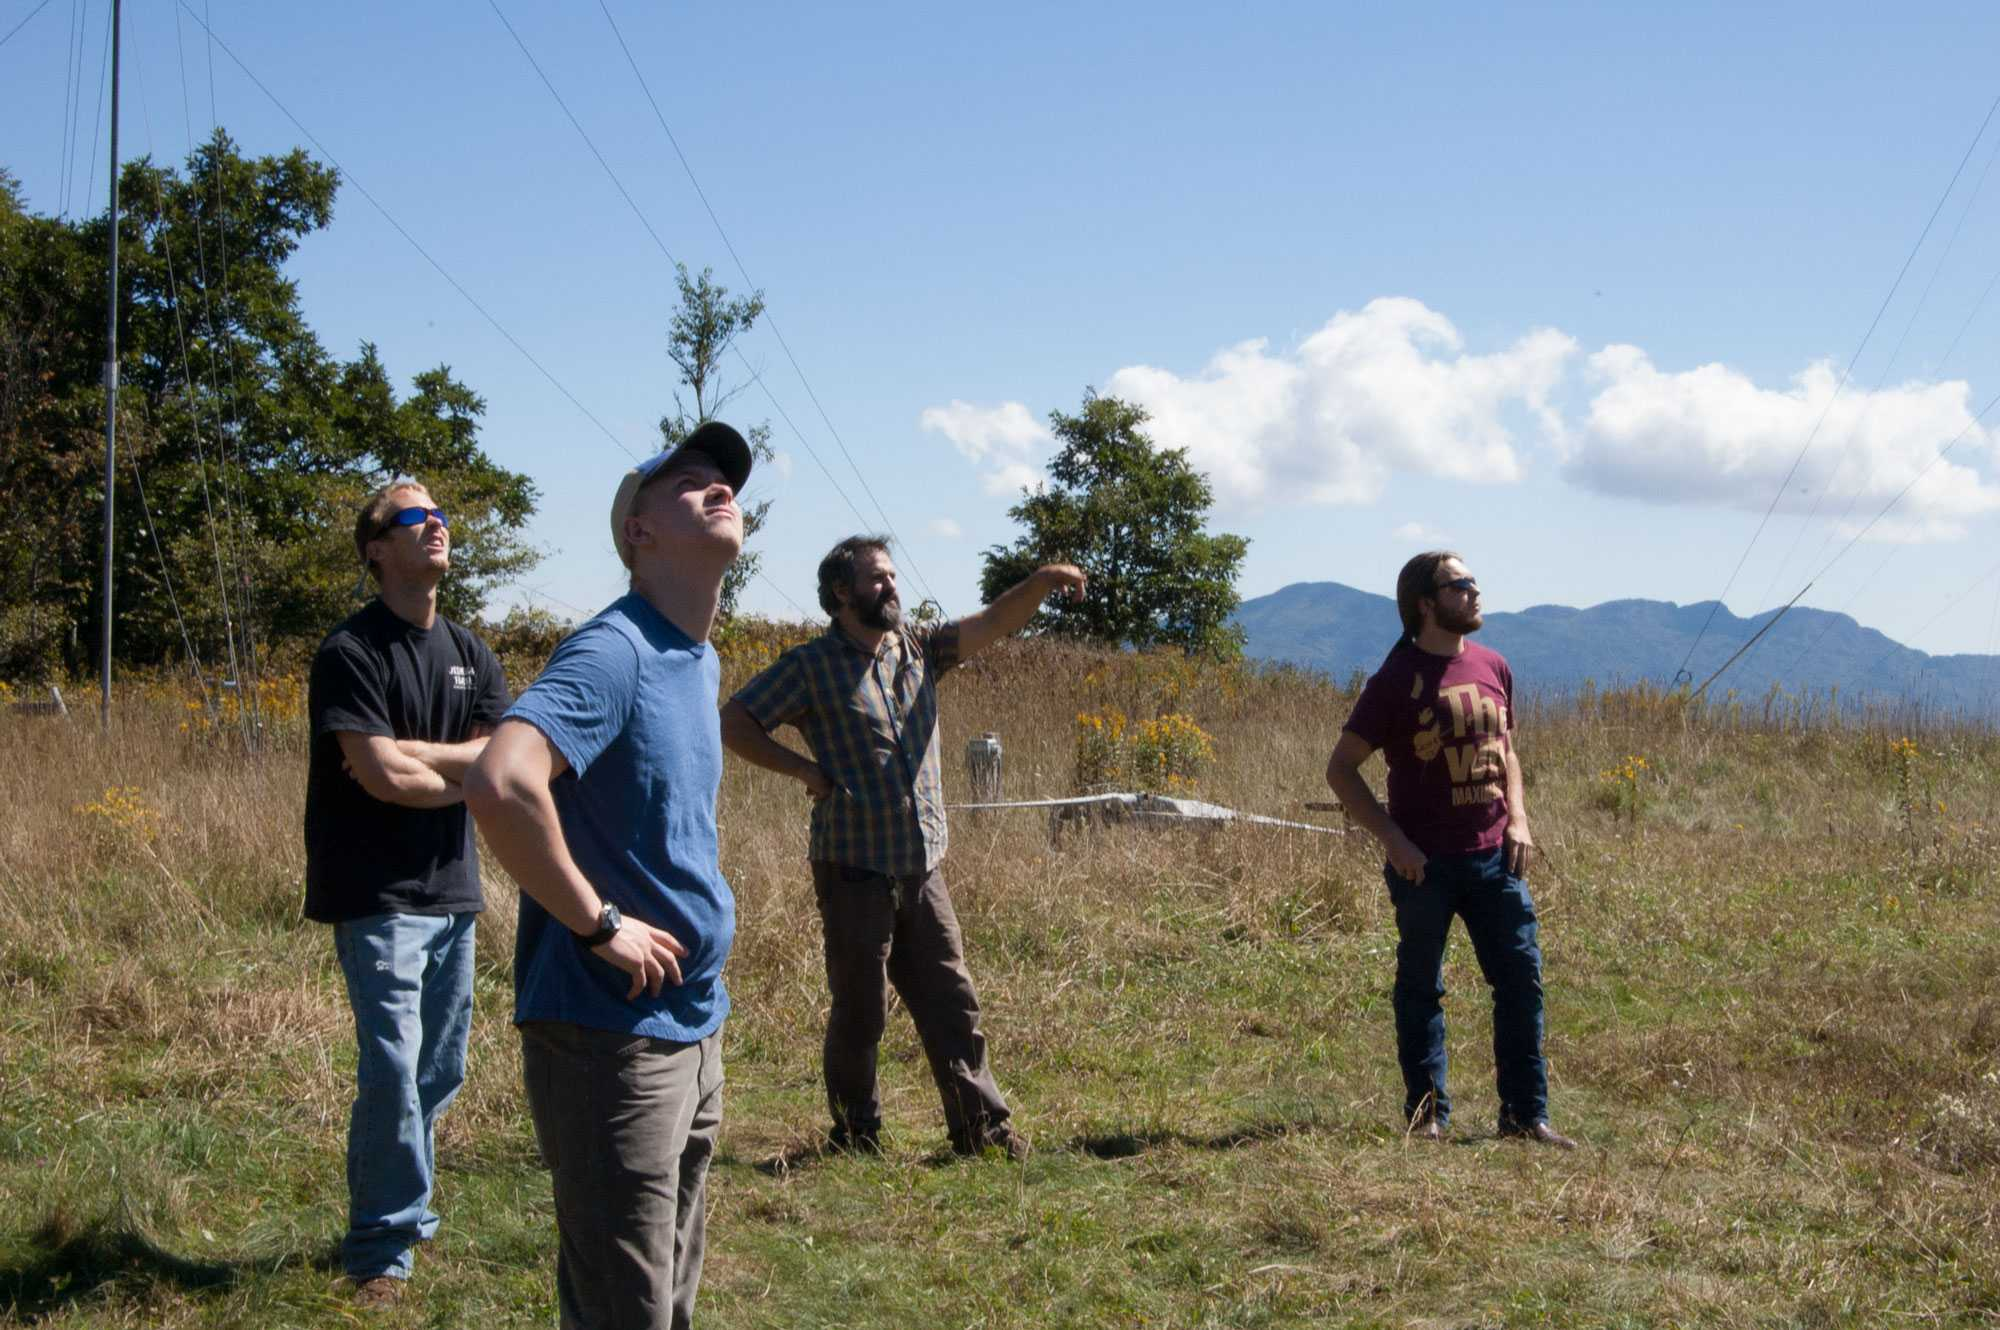 Small Wind project provides wind power learning for students